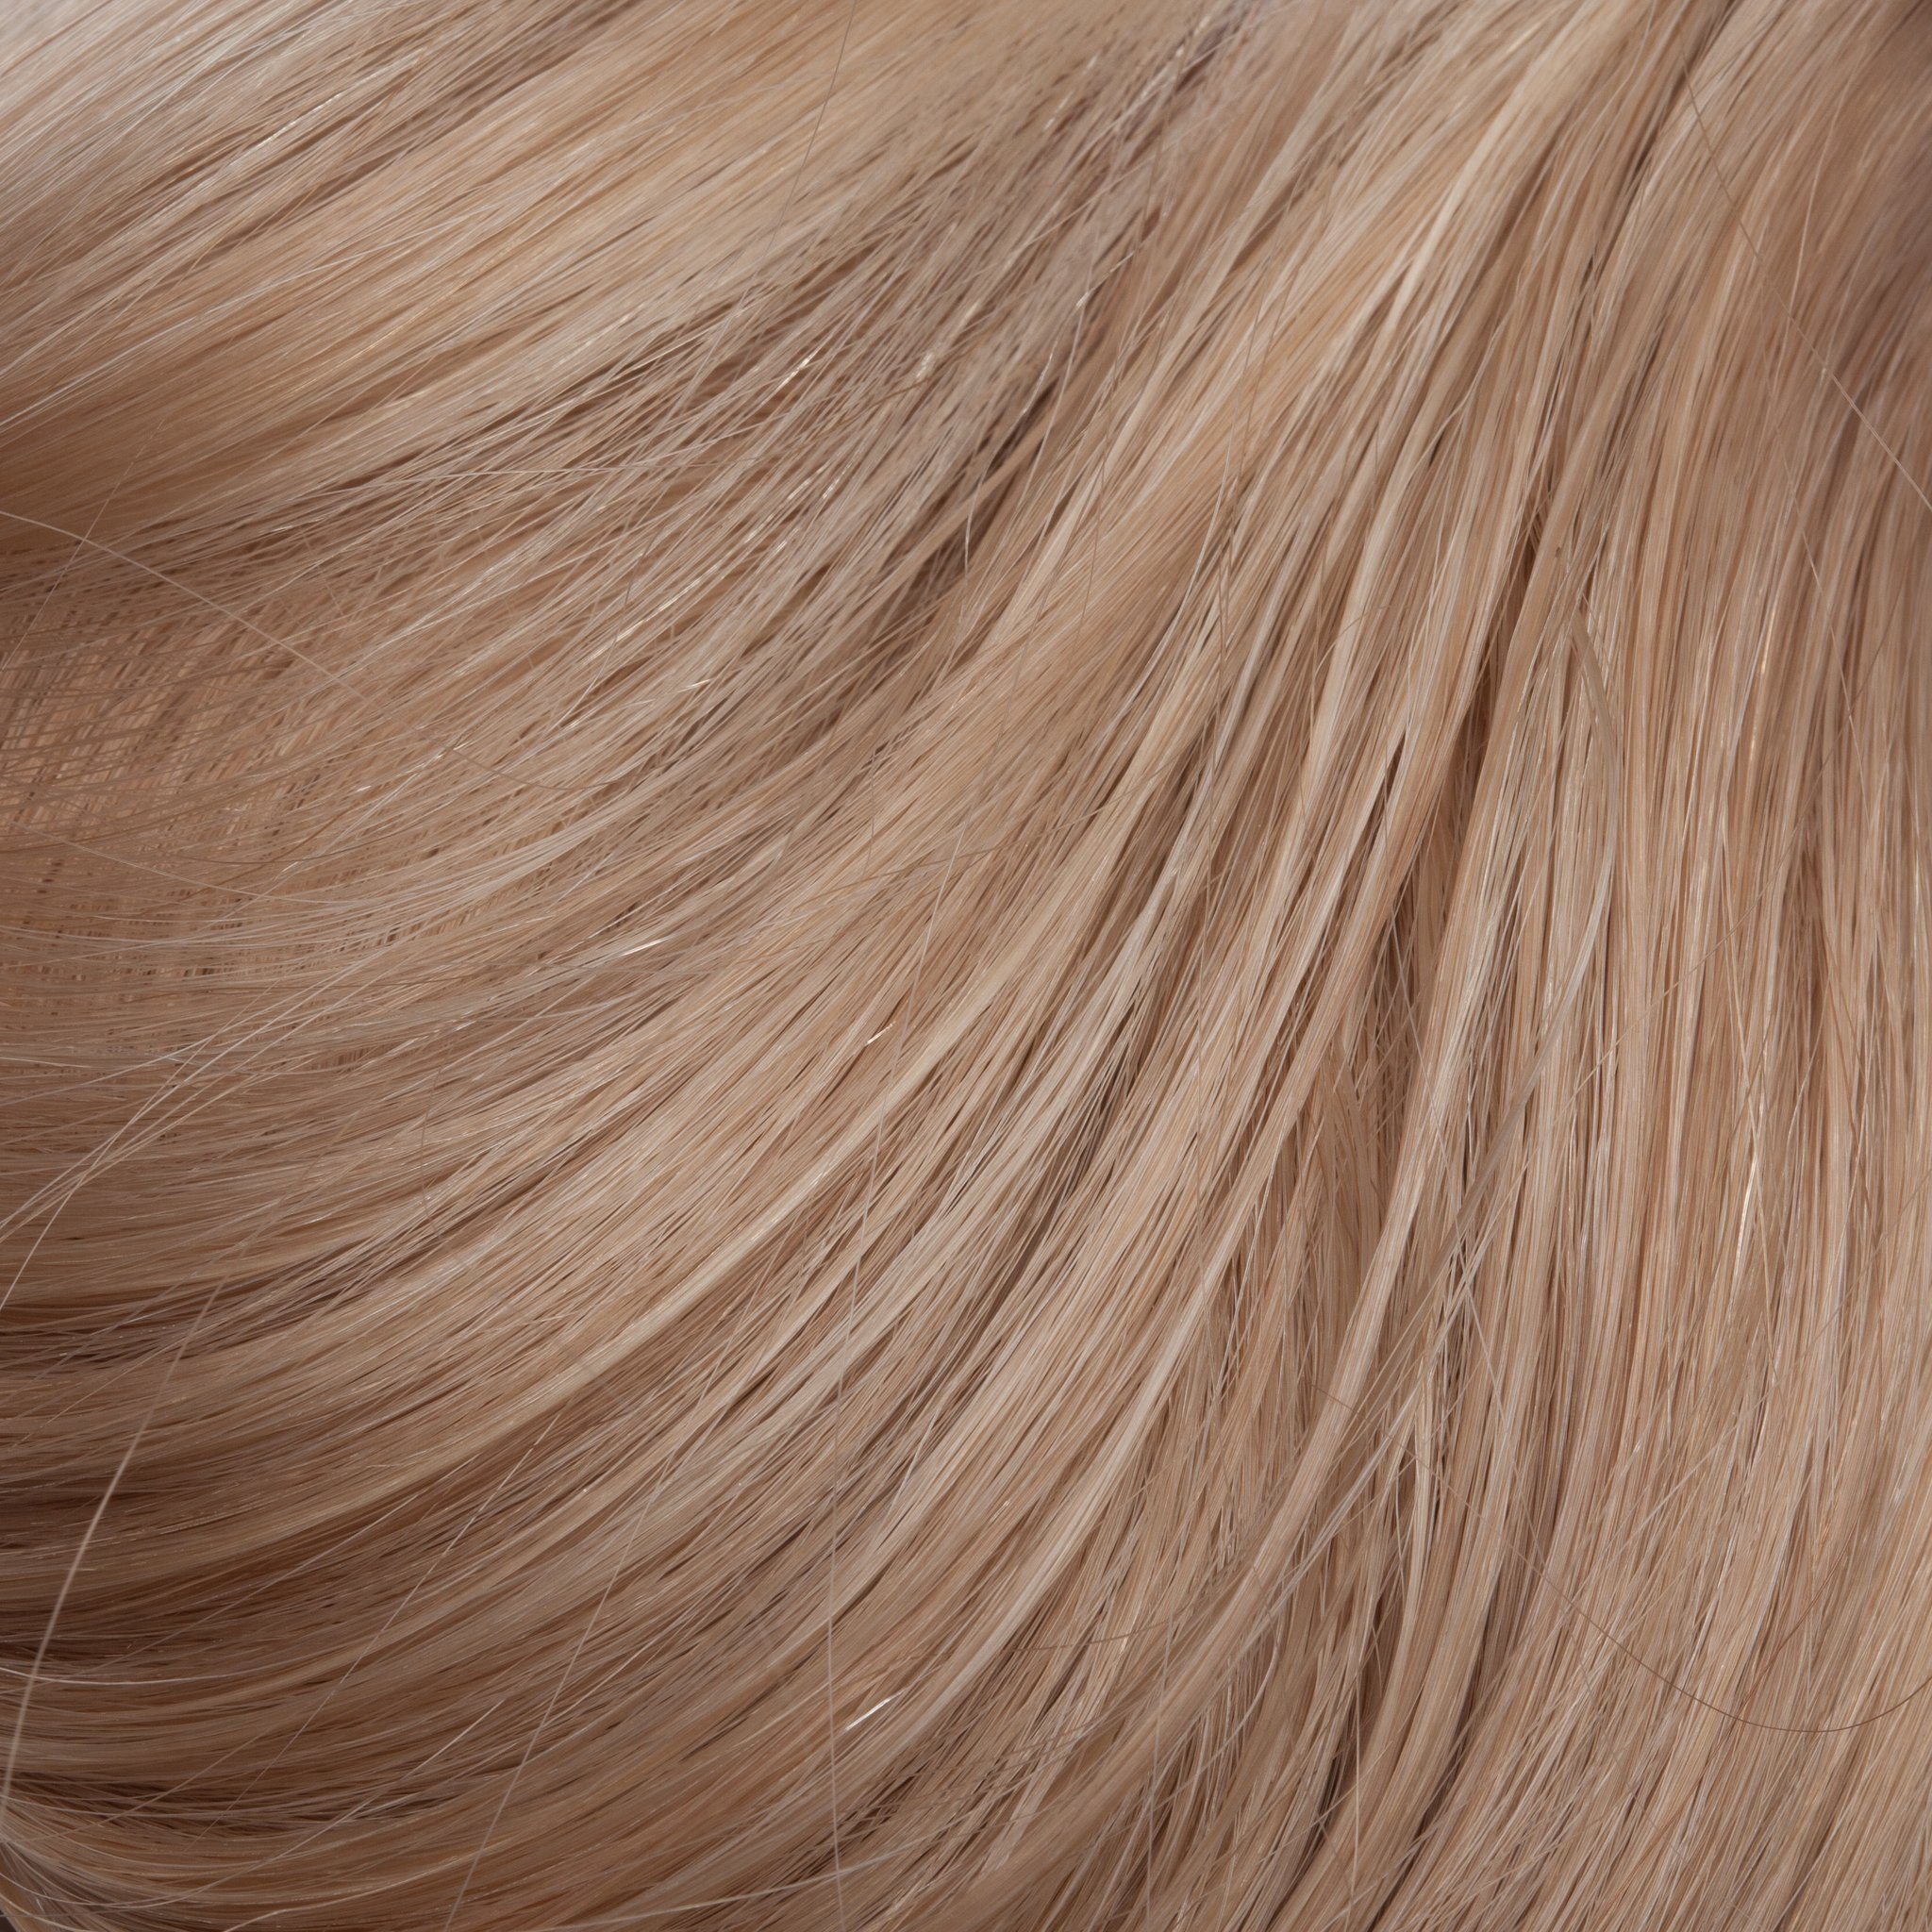 Extensionology hair extensions at stella luca stella luca extensionology hair extensions orlando pmusecretfo Gallery